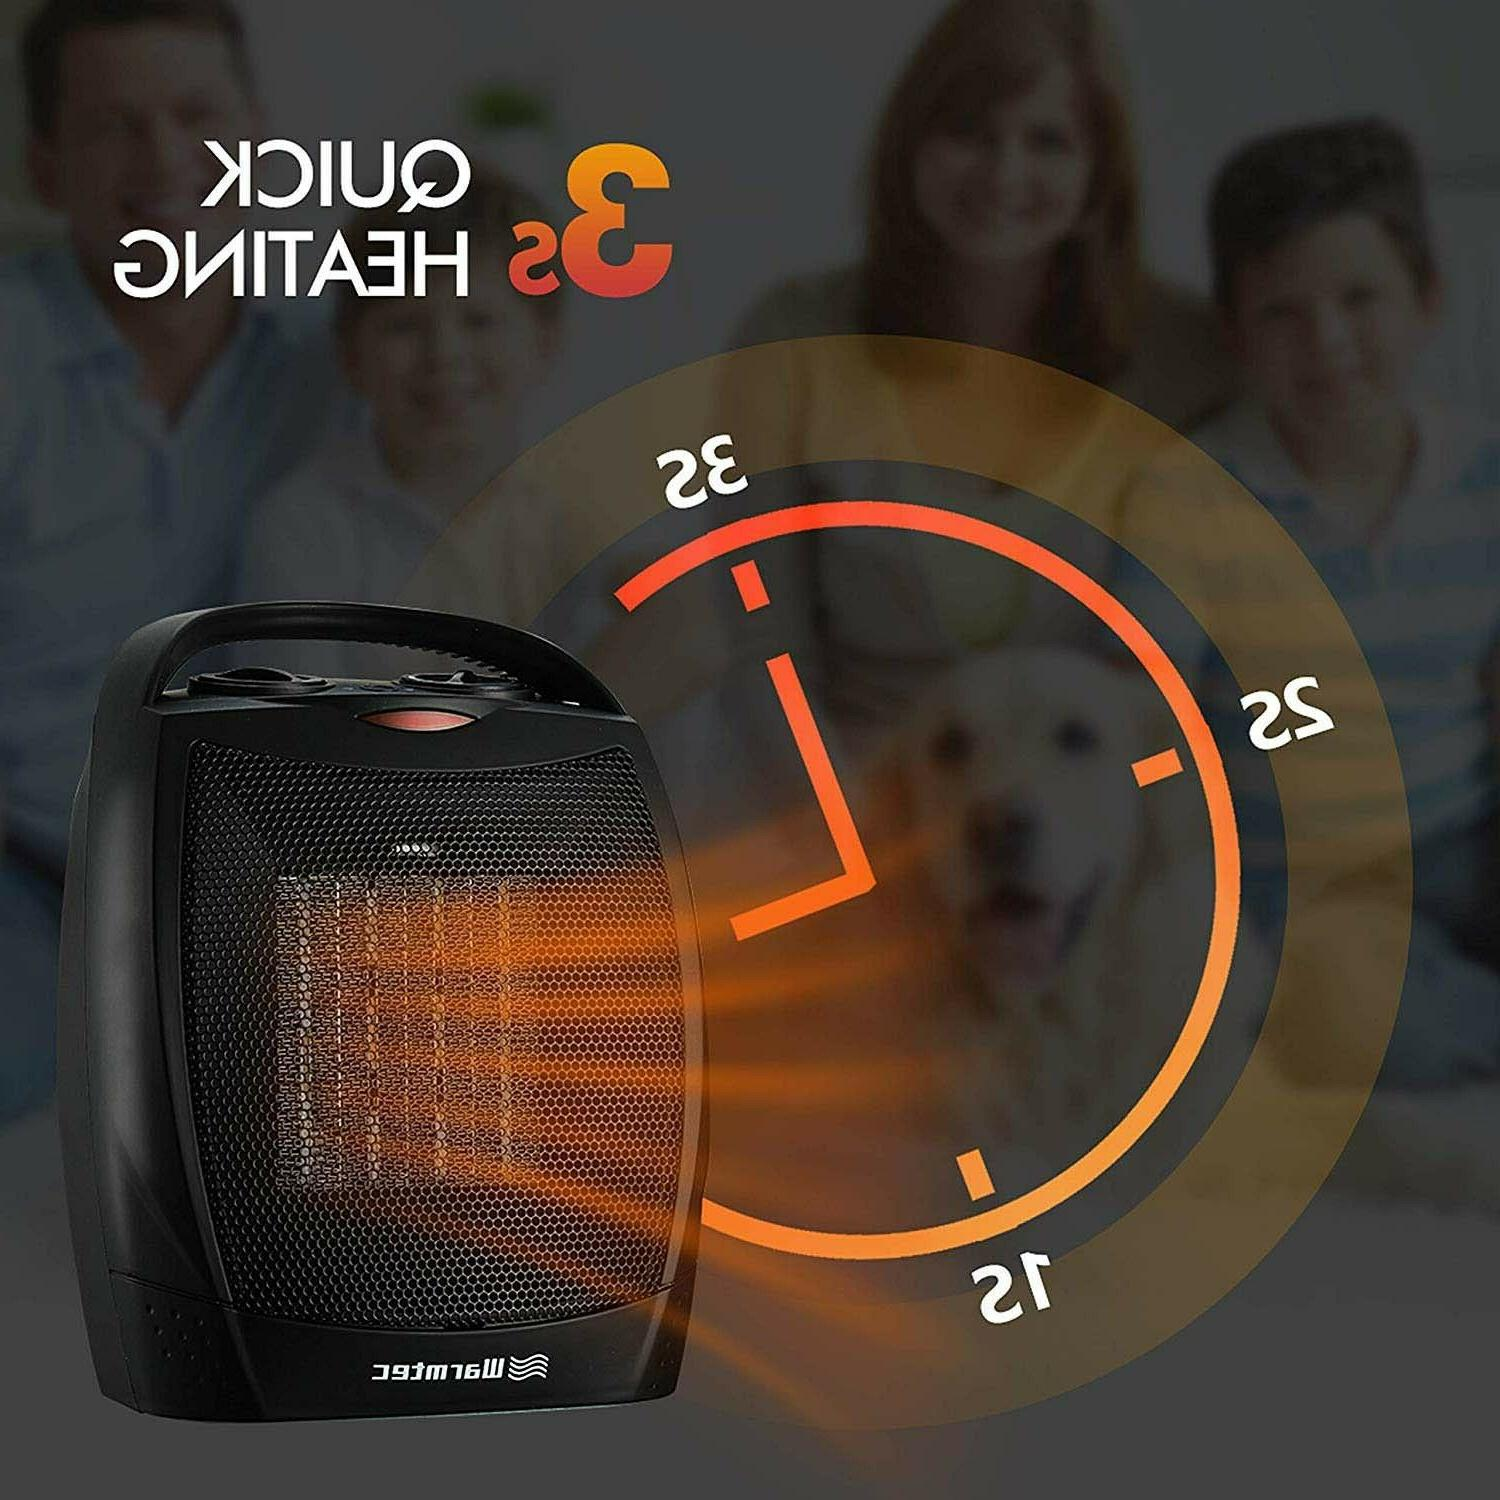 Portable Ceramic Space Mini Thermostat with